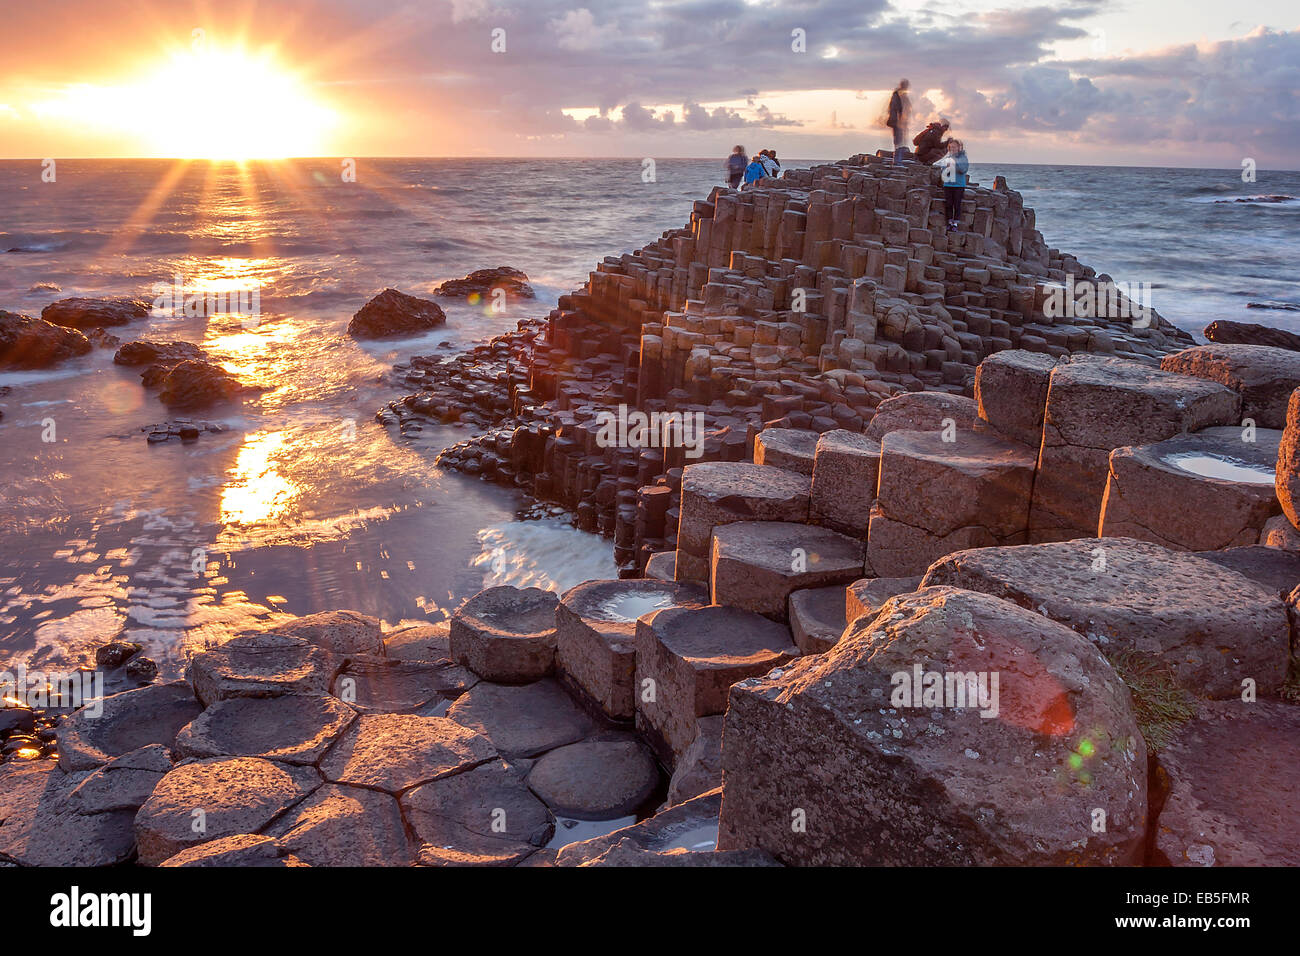 People visiting Giant s Causeway at the sunset in North Antrim, Northern Ireland - Stock Image